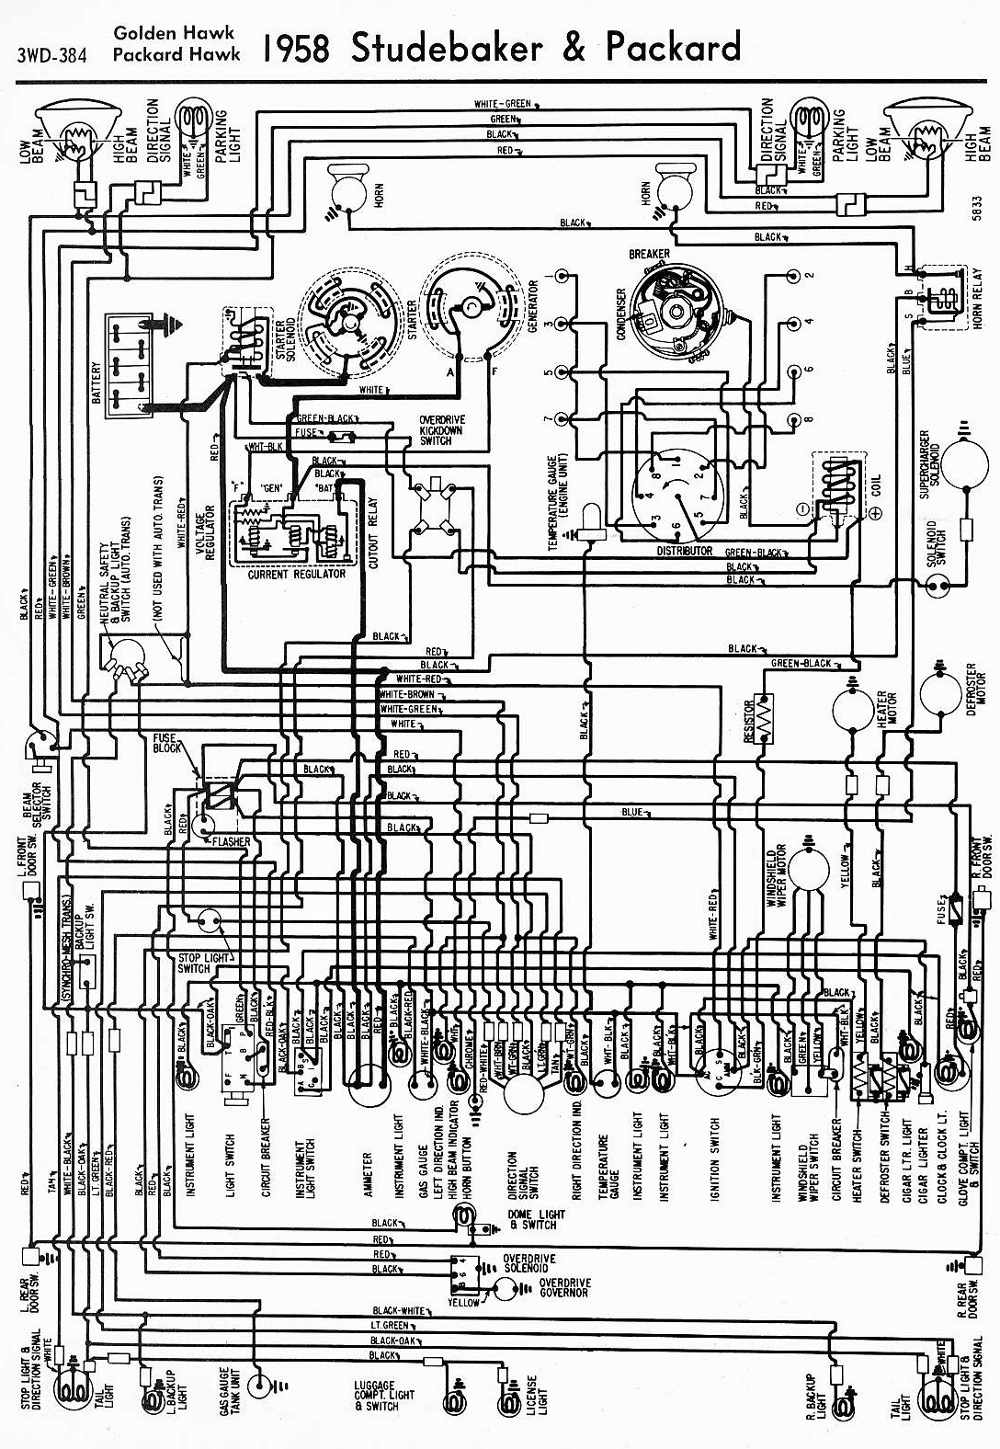 1958 studebaker and packard golden hawk and packard hawk wiring diagram [ 1000 x 1449 Pixel ]